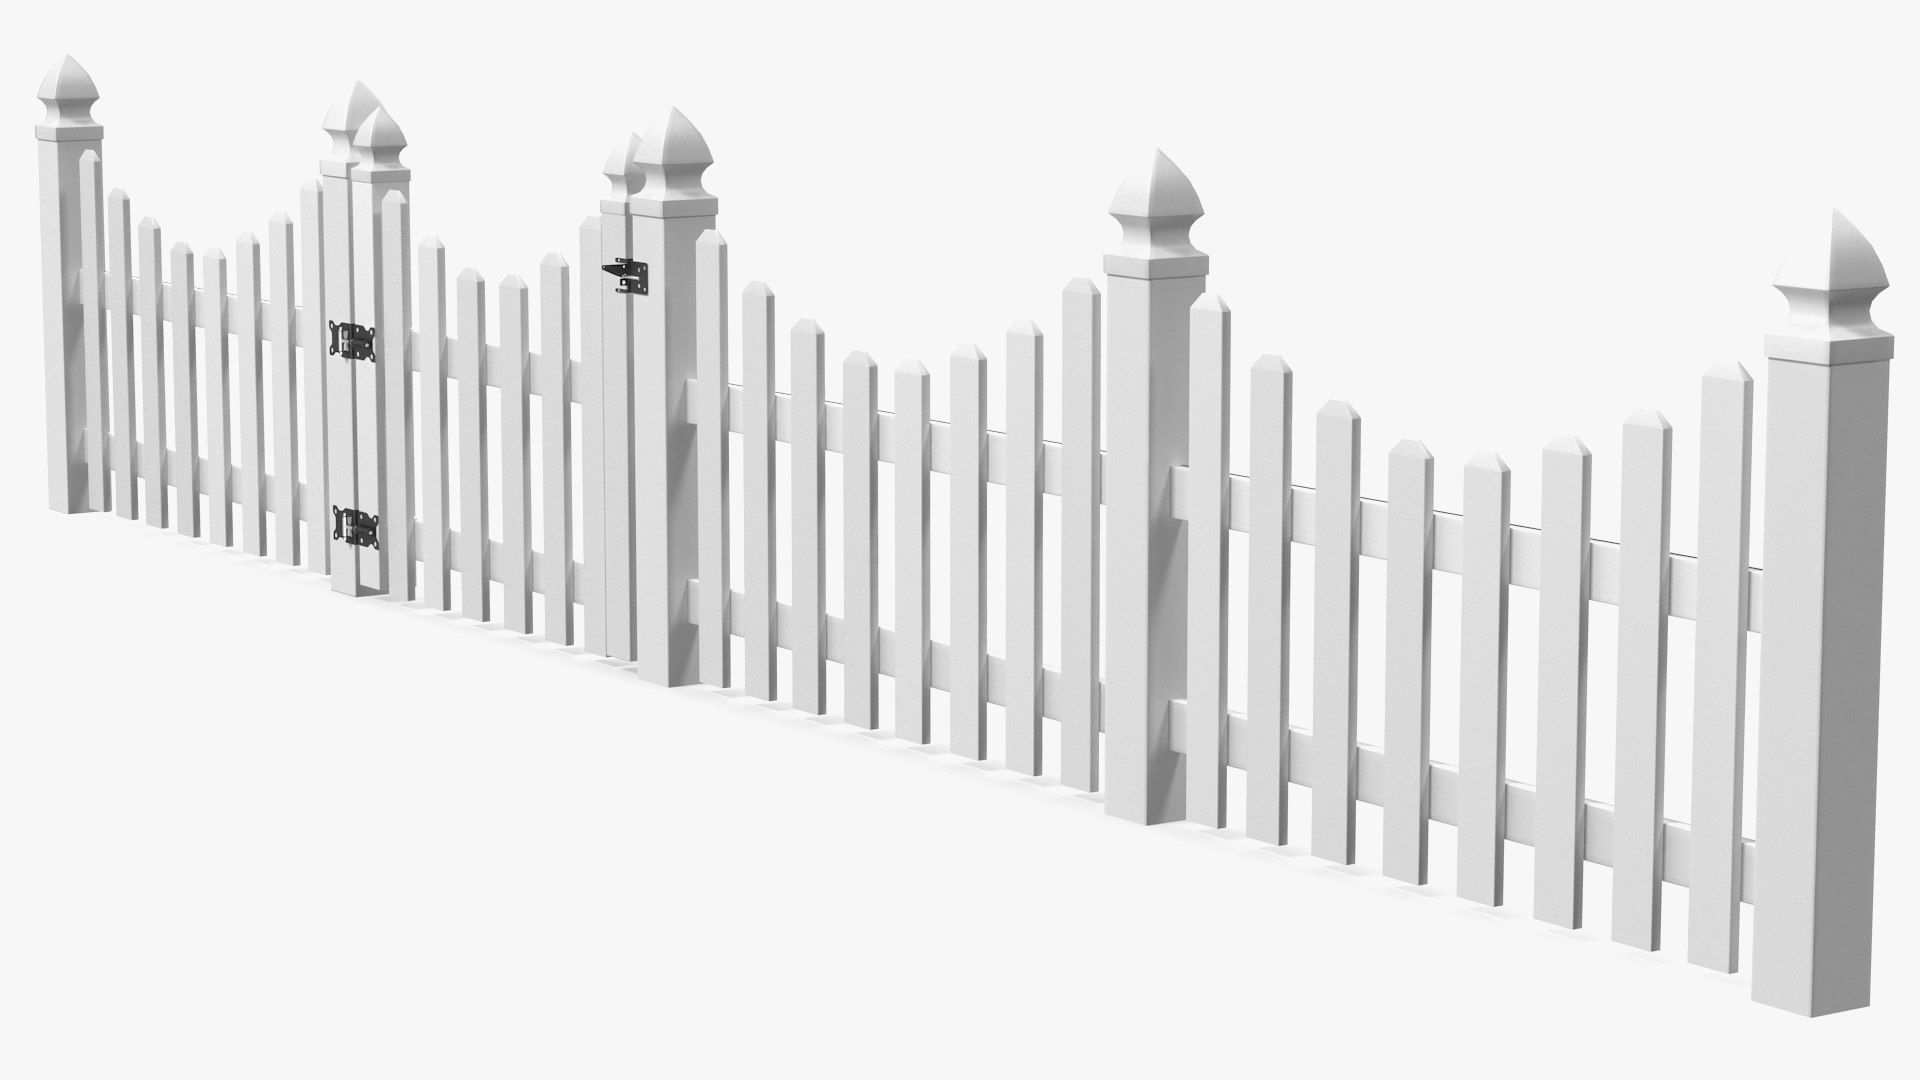 White scalloped fence section 3D model - TurboSquid 1575163